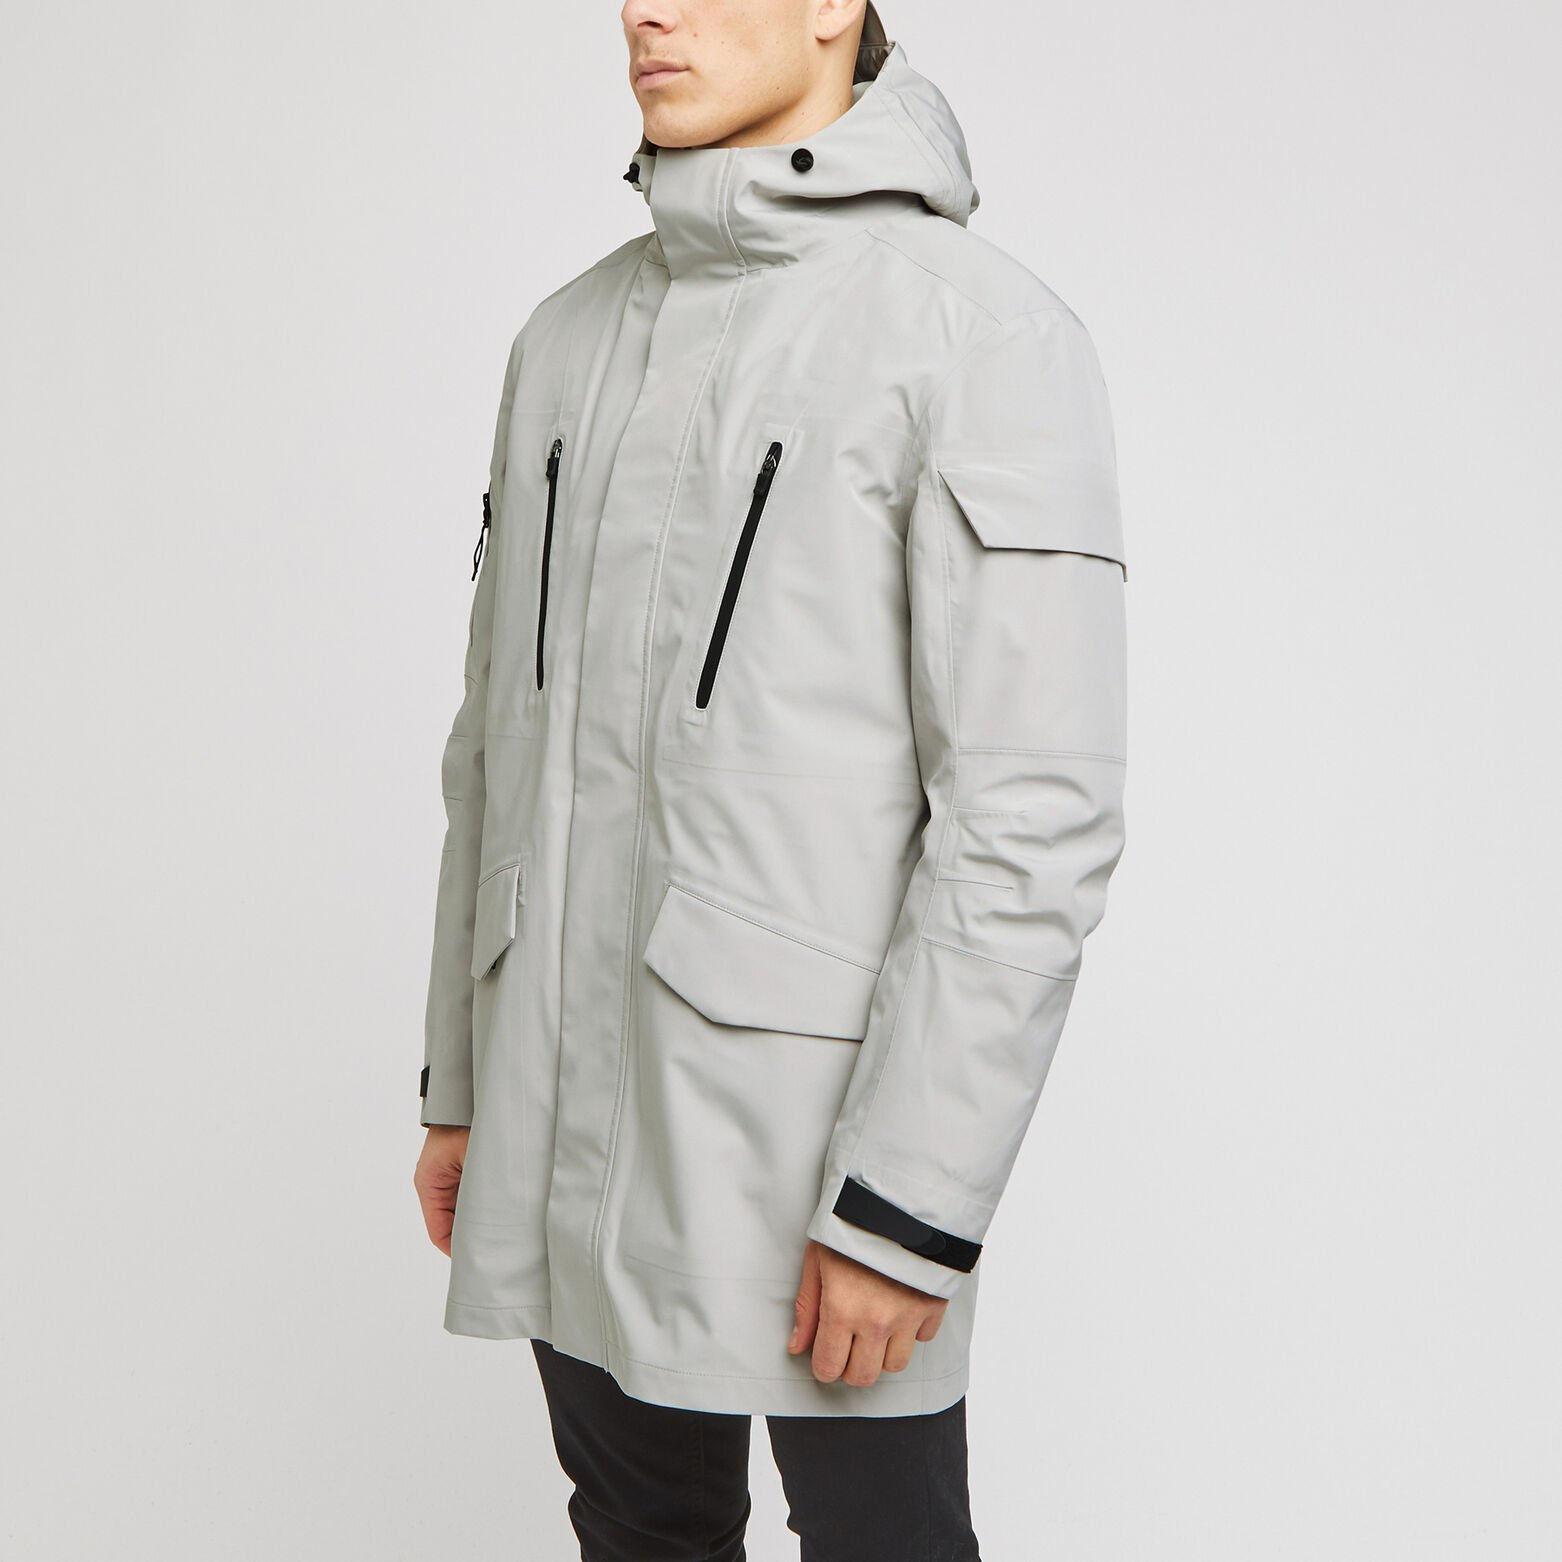 Parka technique 3 en 1 en polyester